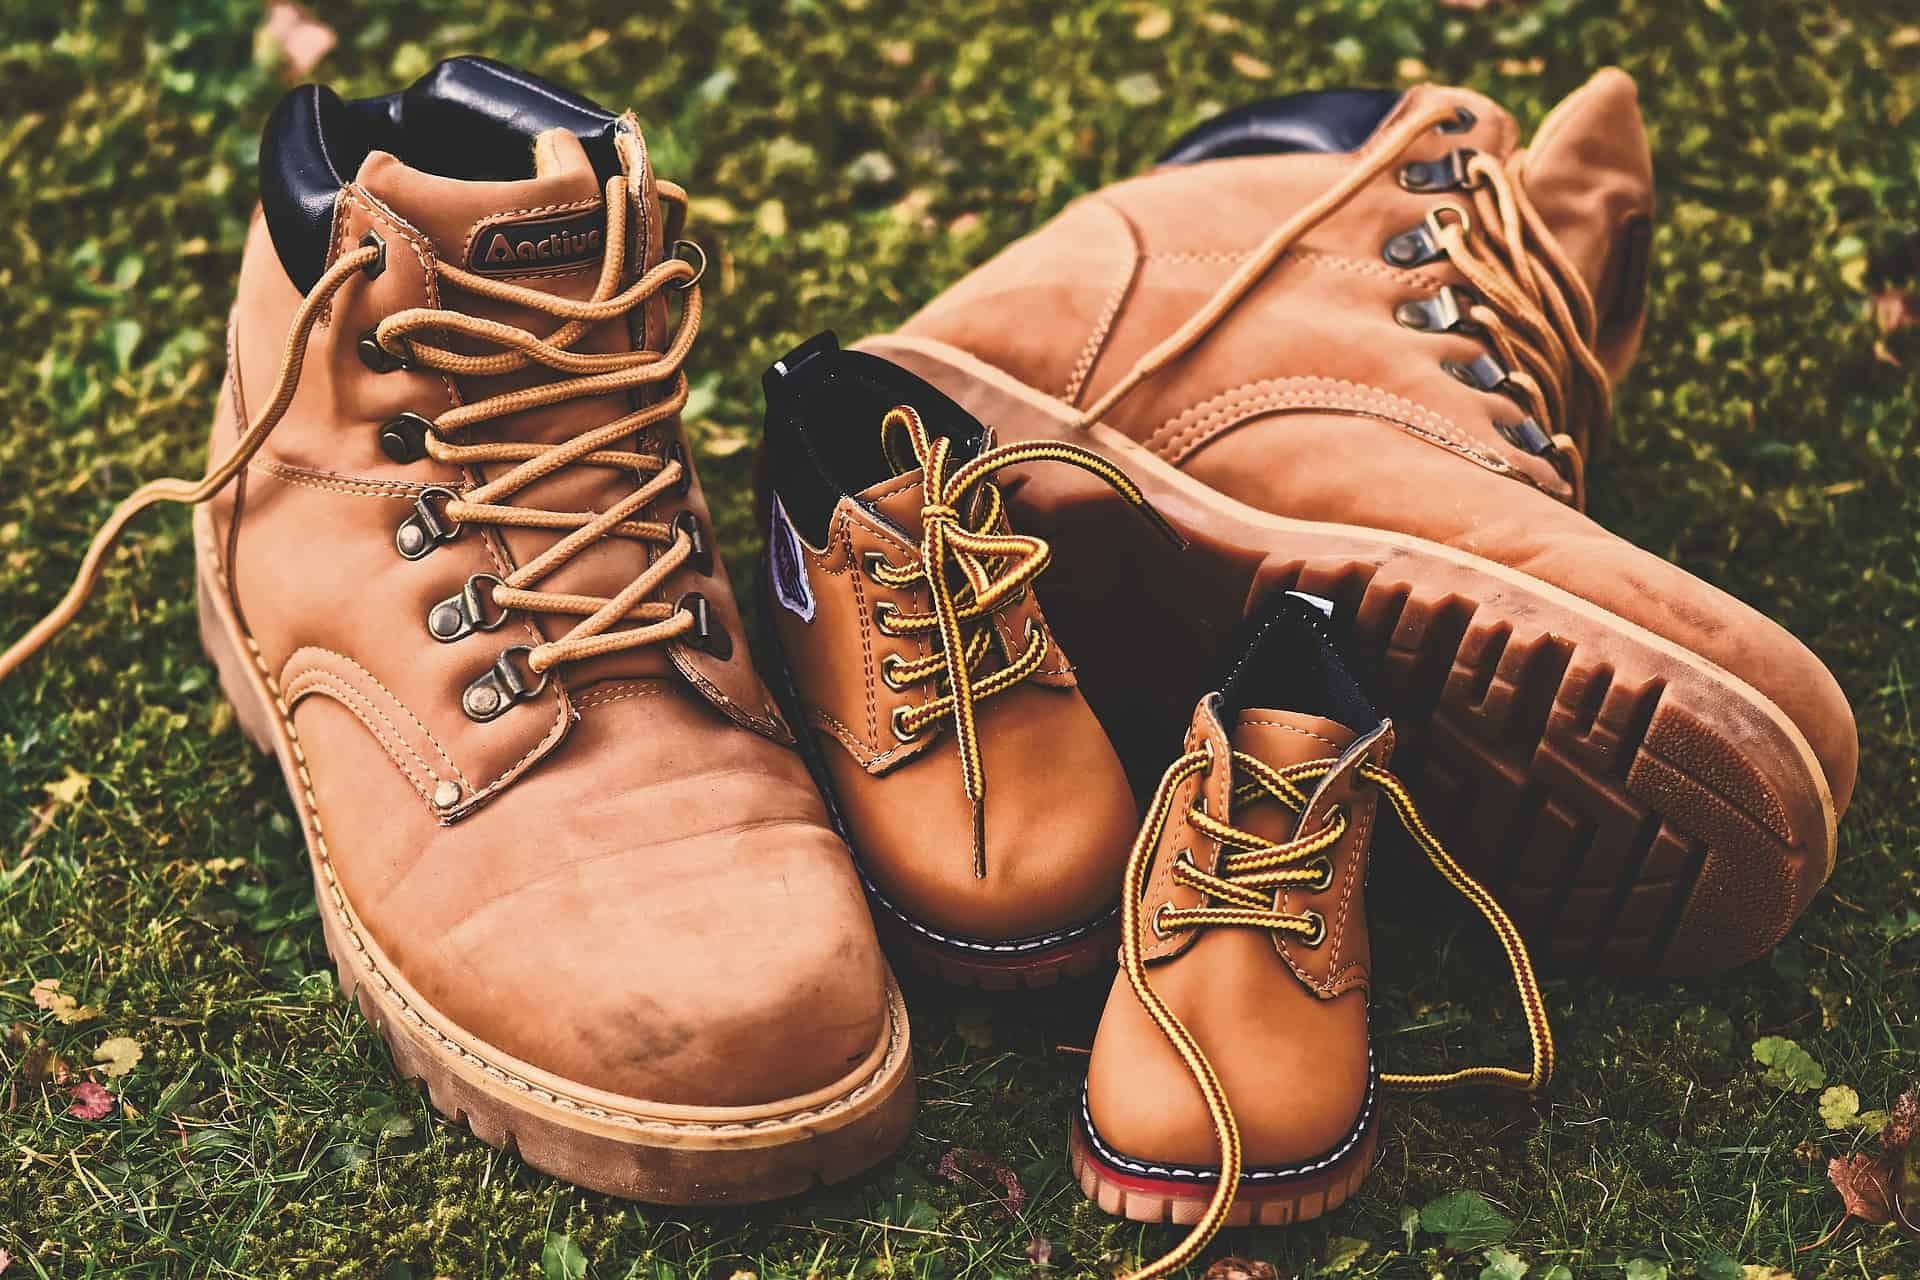 Nubuck Leather - Surprisingly Soft and